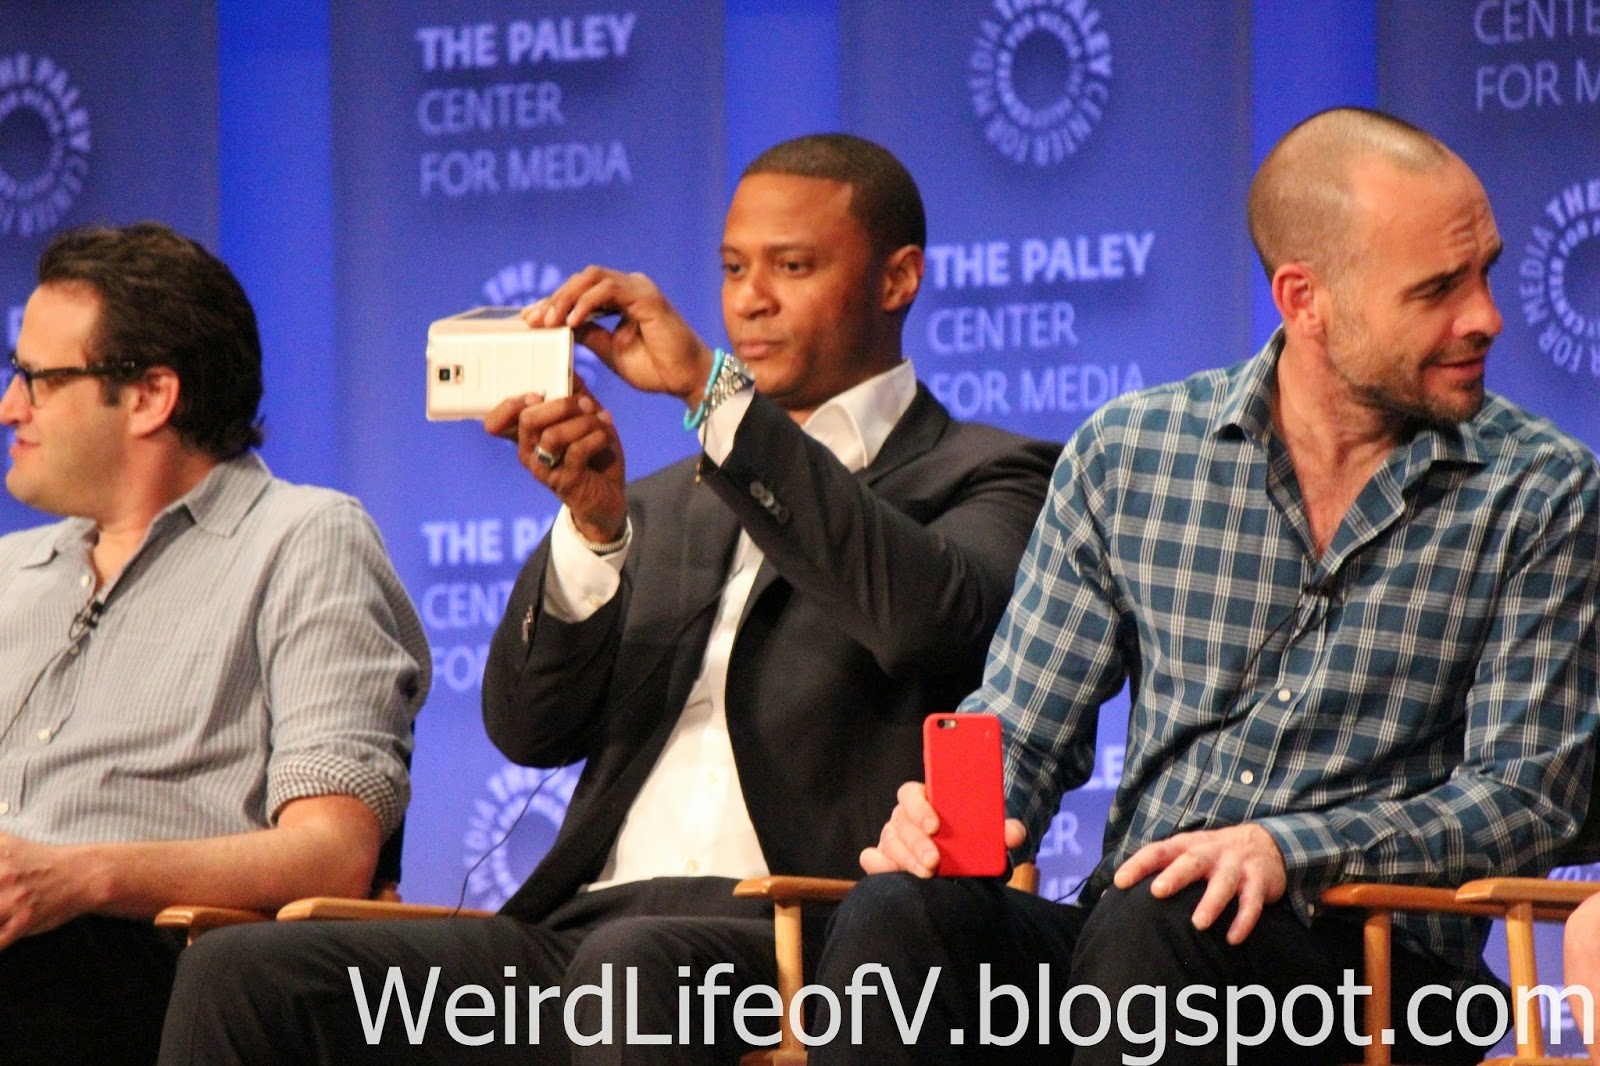 David Ramsey taking a photo of the audience